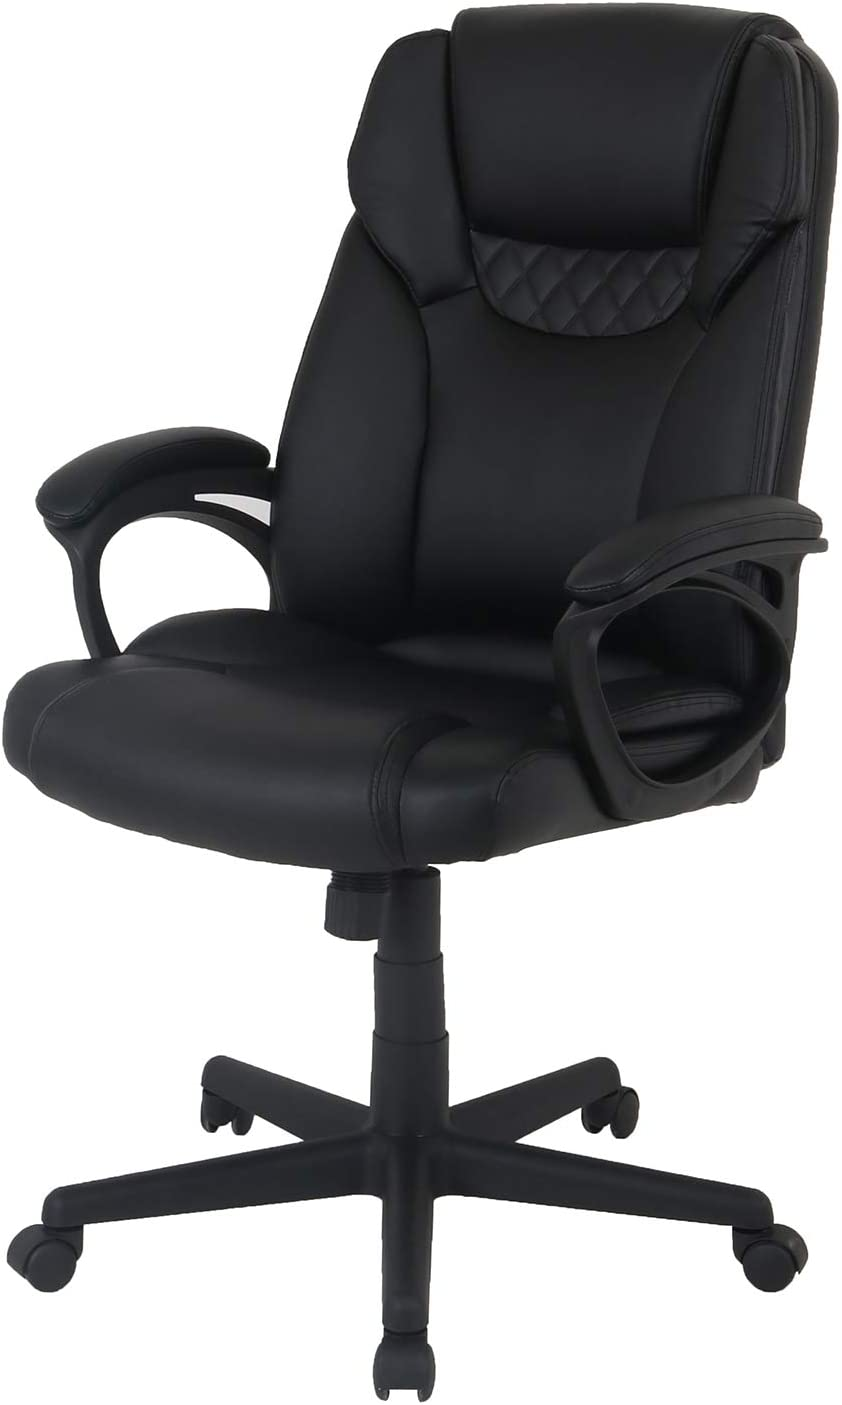 LCH High Back PU Leather Office Chair – Adjustable Ergonomic Swivel Executive Computer Desk Chair, with Comfort Thick Padding Lumbar Support for Home Office Black